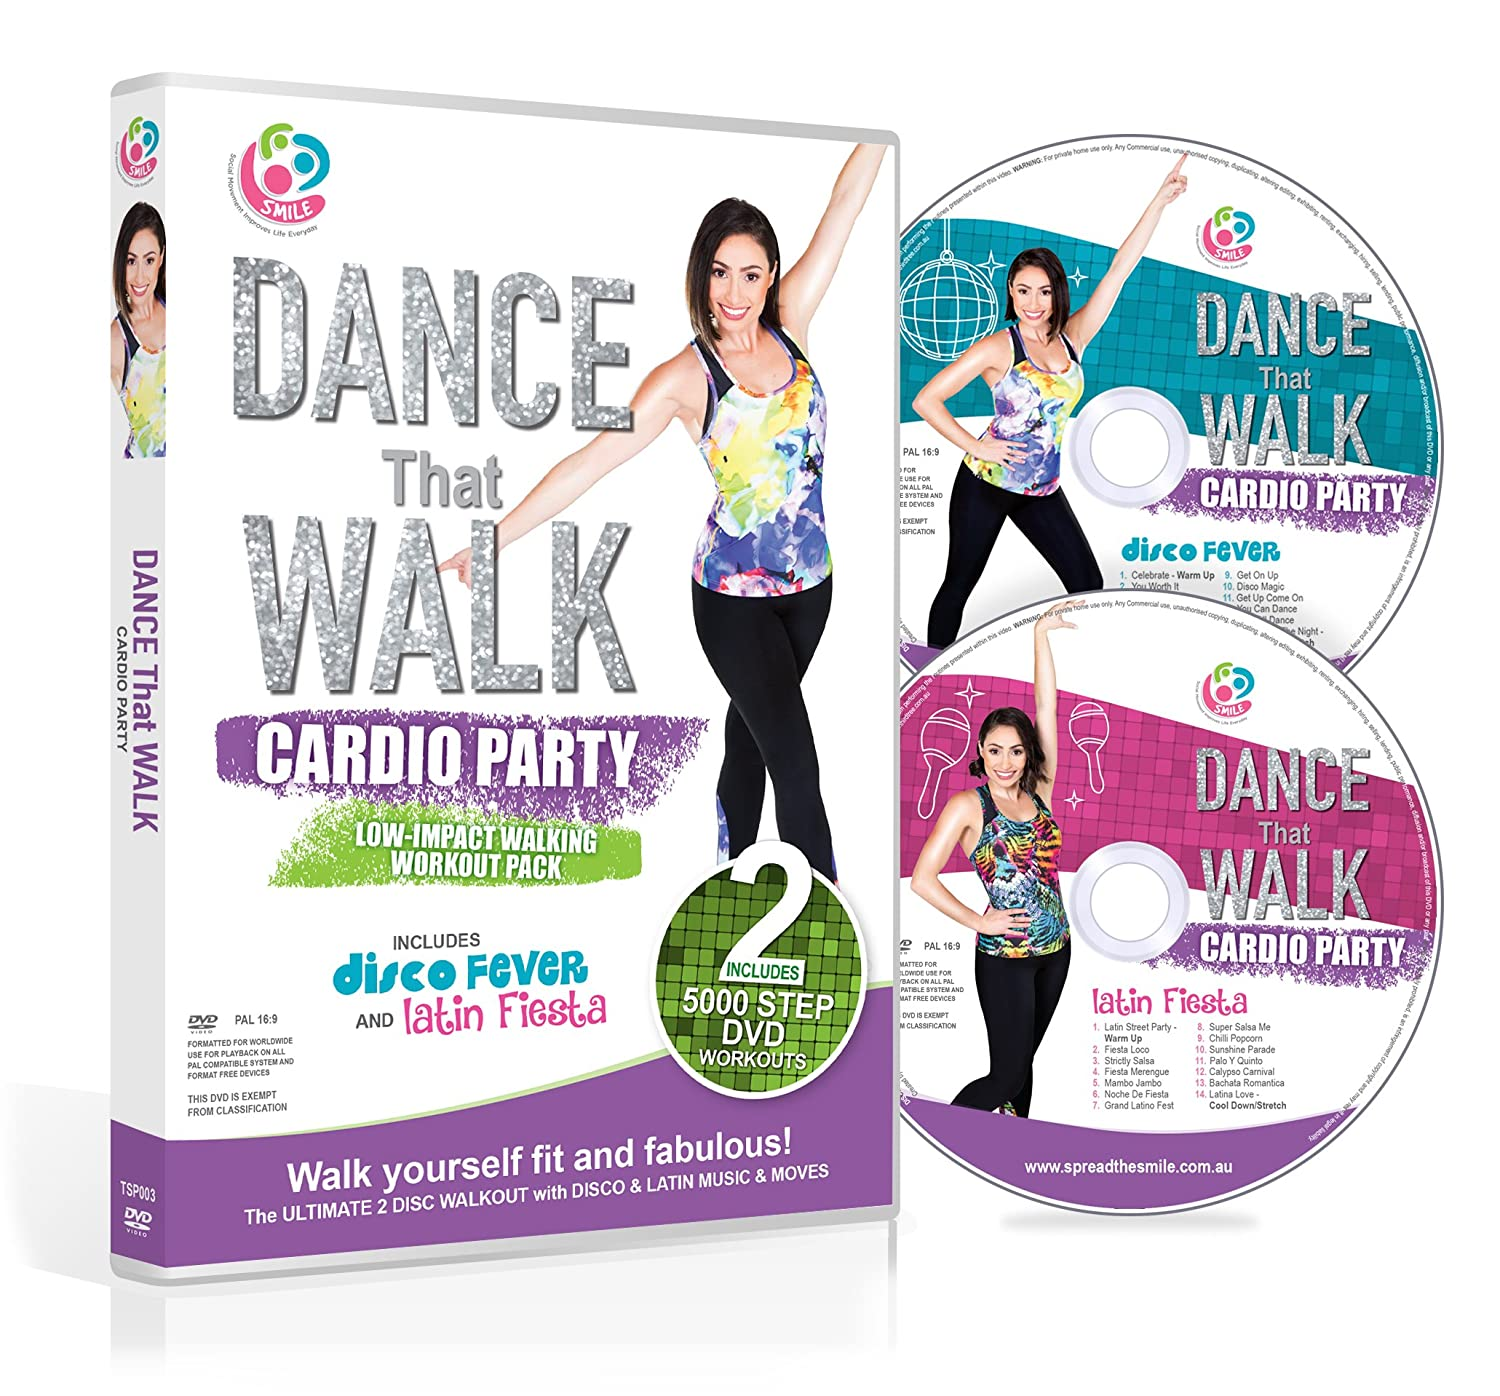 DANCE That WALK - CARDIO PARTY - Low Impact Walking Workout Pack ...